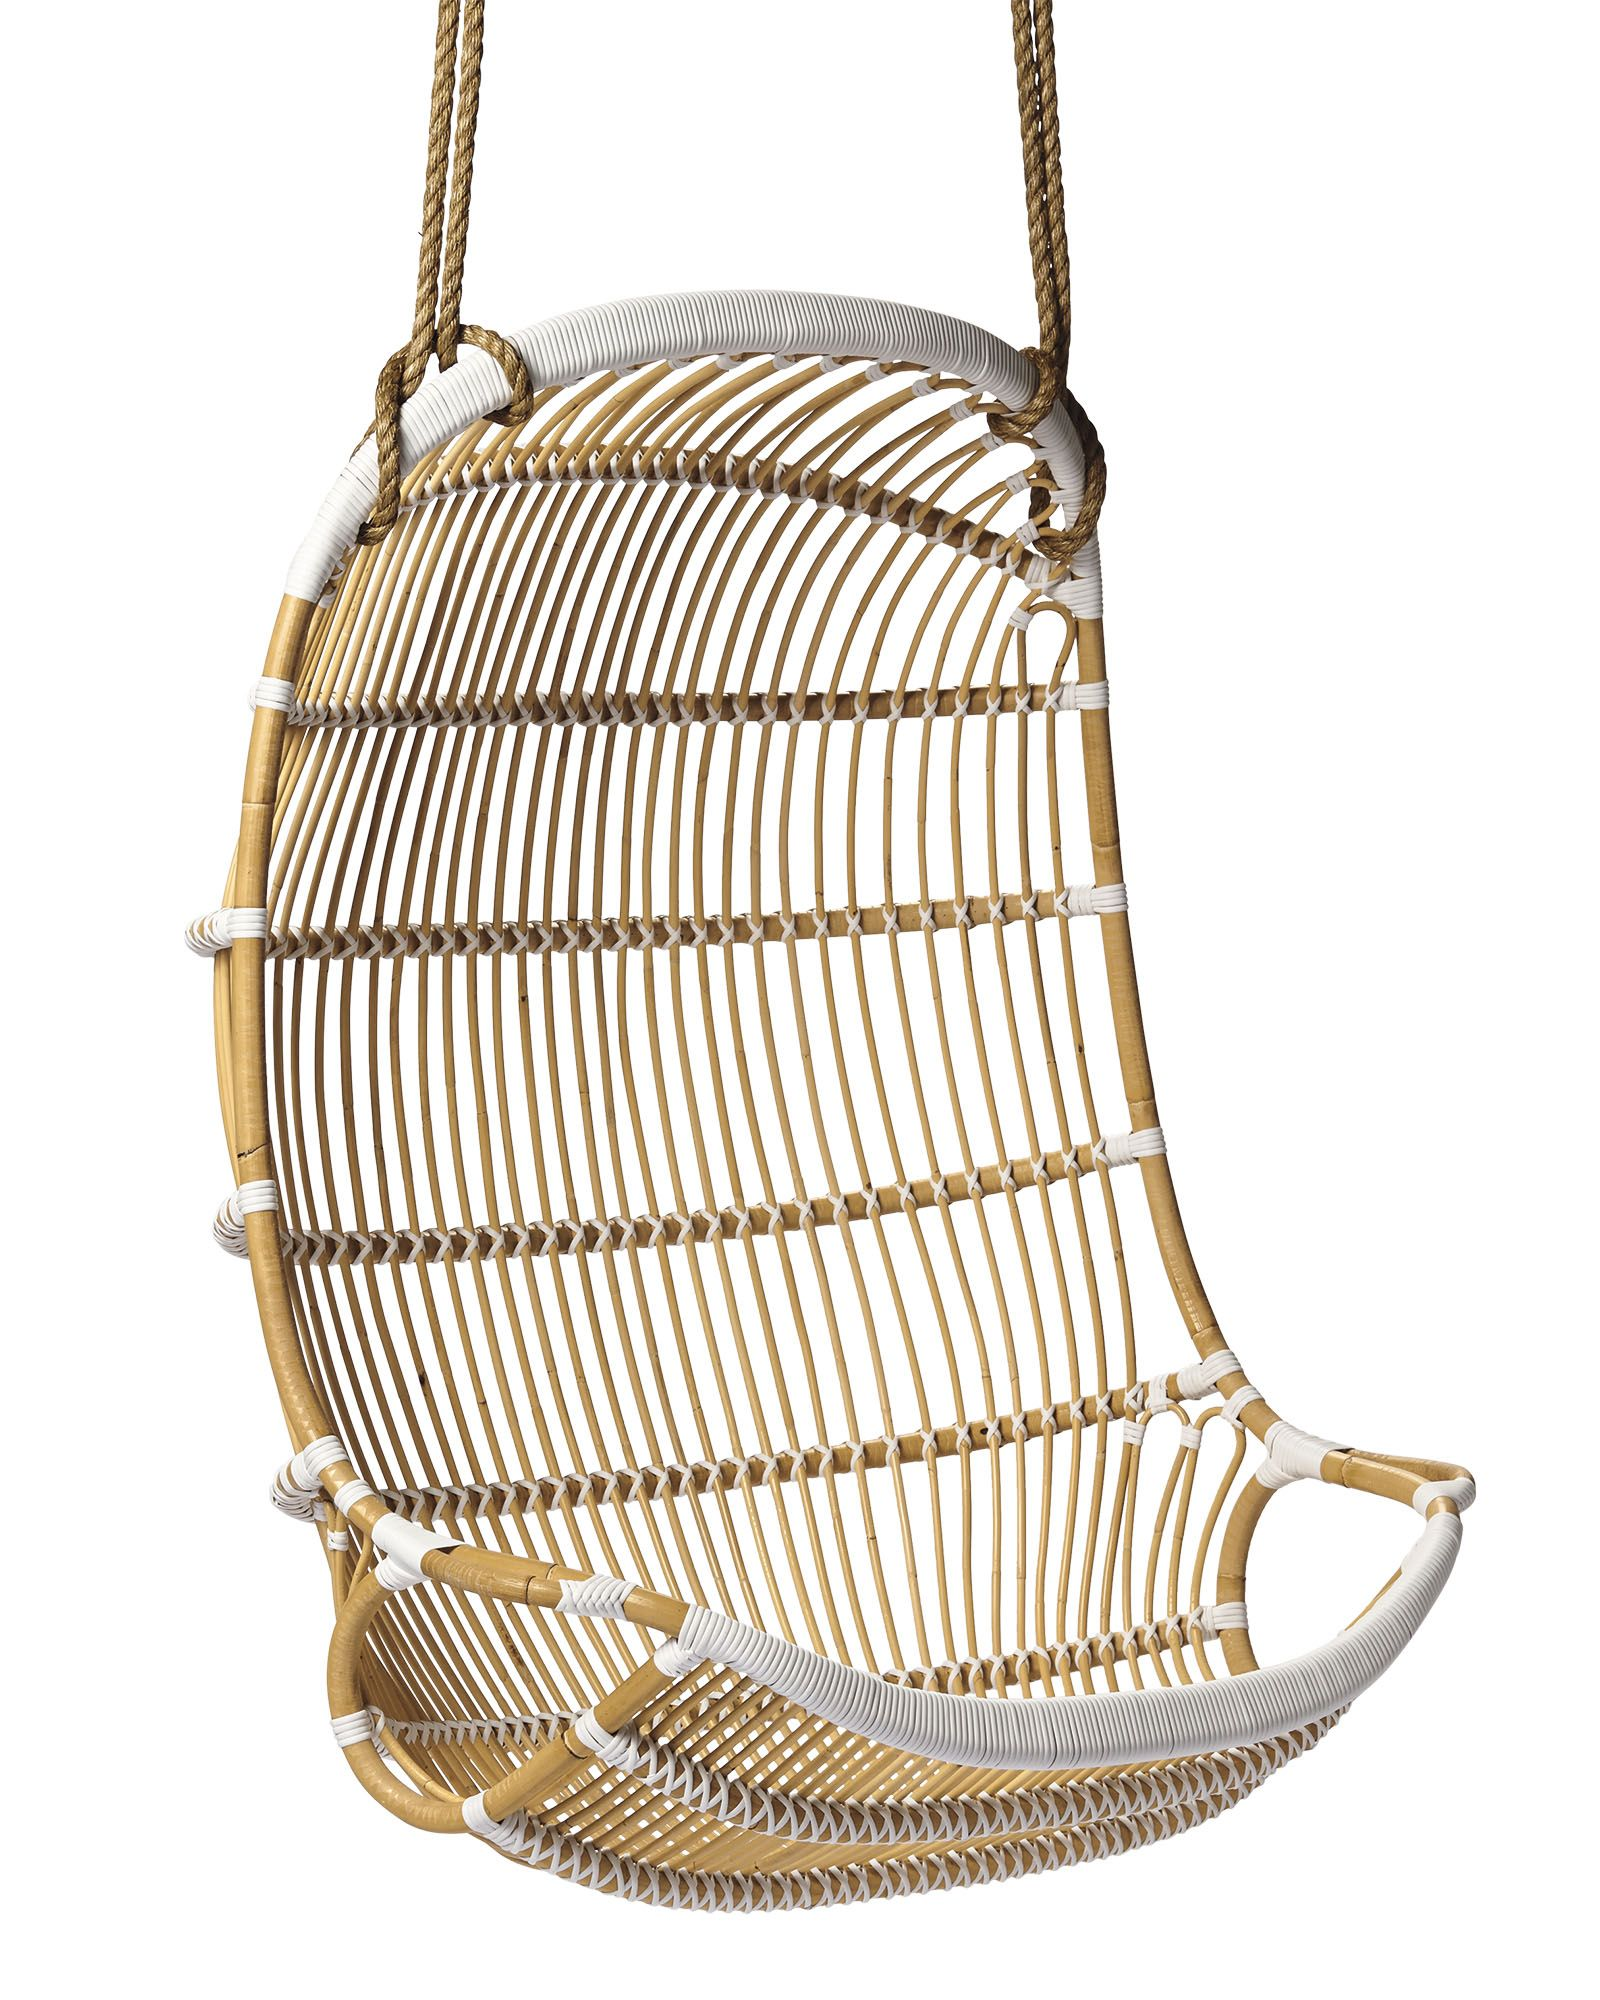 Double hanging rattan chair hanging rattan chair